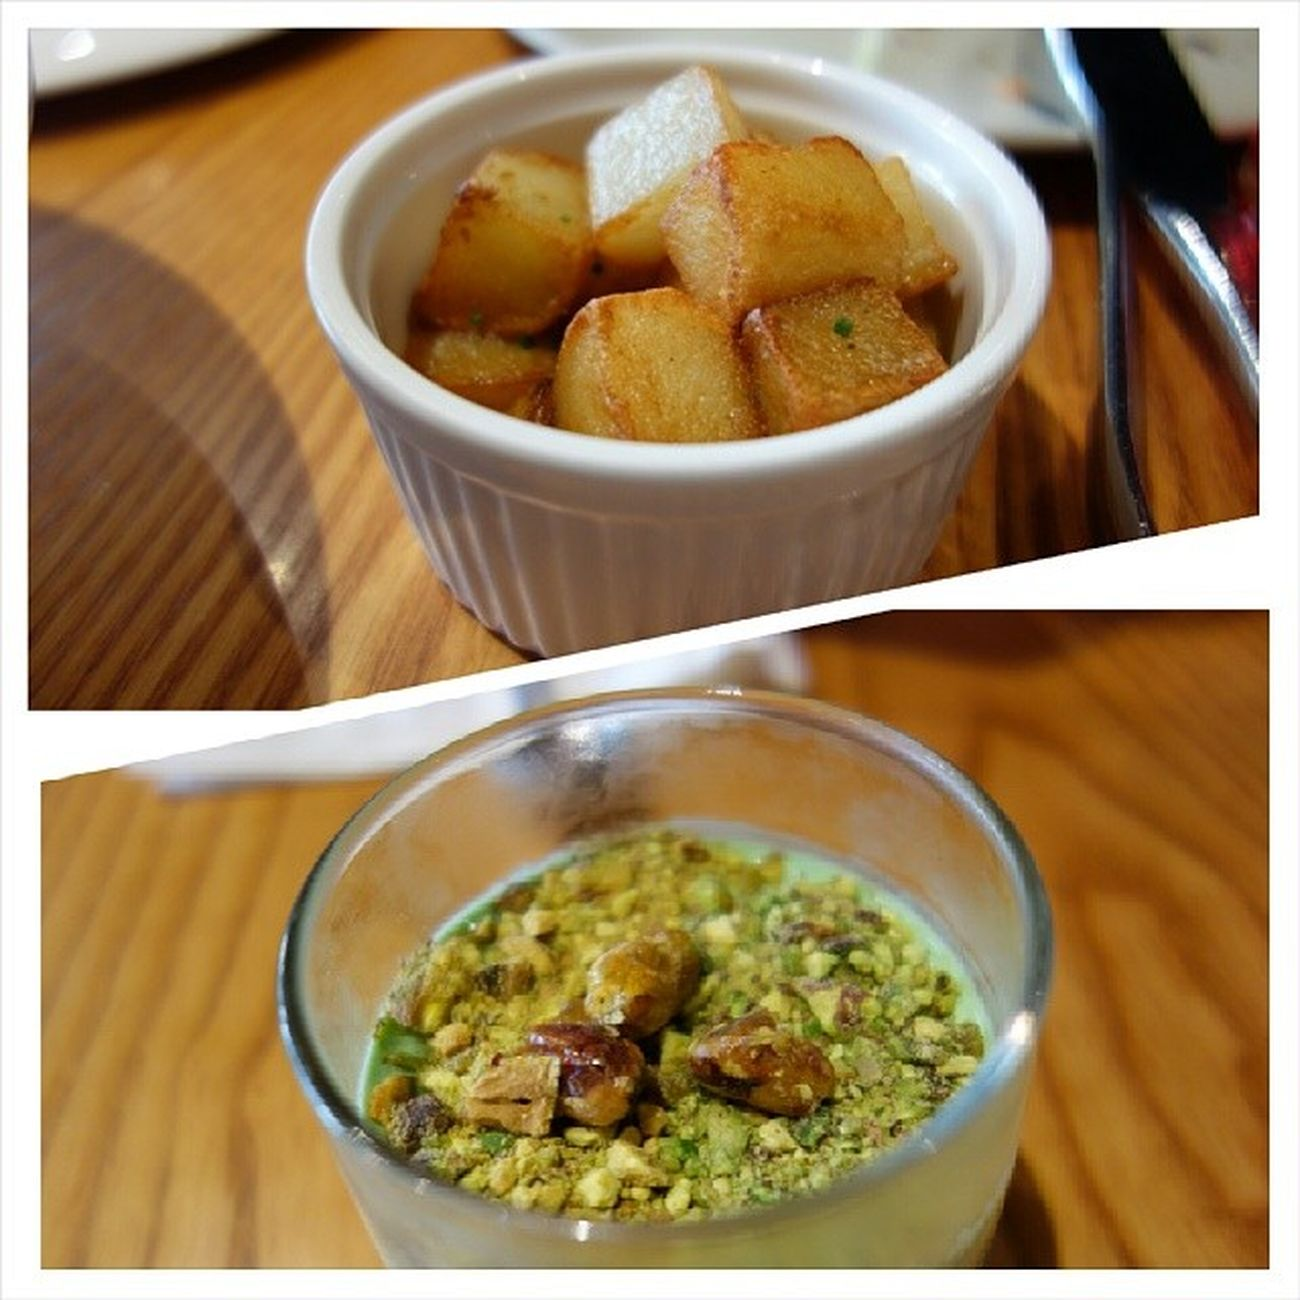 Extra side dish: sautéed potatoes (this is good...) Dessert: Pistachio Panna Cotta with ground & caramelised pistachios (creamy , flavourful dessert that end our meal on a good note!) Lunch Potatoes Dessert EatOut foodporn yummy fatdieme makanhunt food instafood instafoodies foodie foodgasm fotd foodgram foodinc sgfood sgigfoodies singaporefood foodforfoodies foodstagram lifeisdeliciousinsingapore happytummy foodphotography foodplease openricesg burpple FoodReviewsAsia